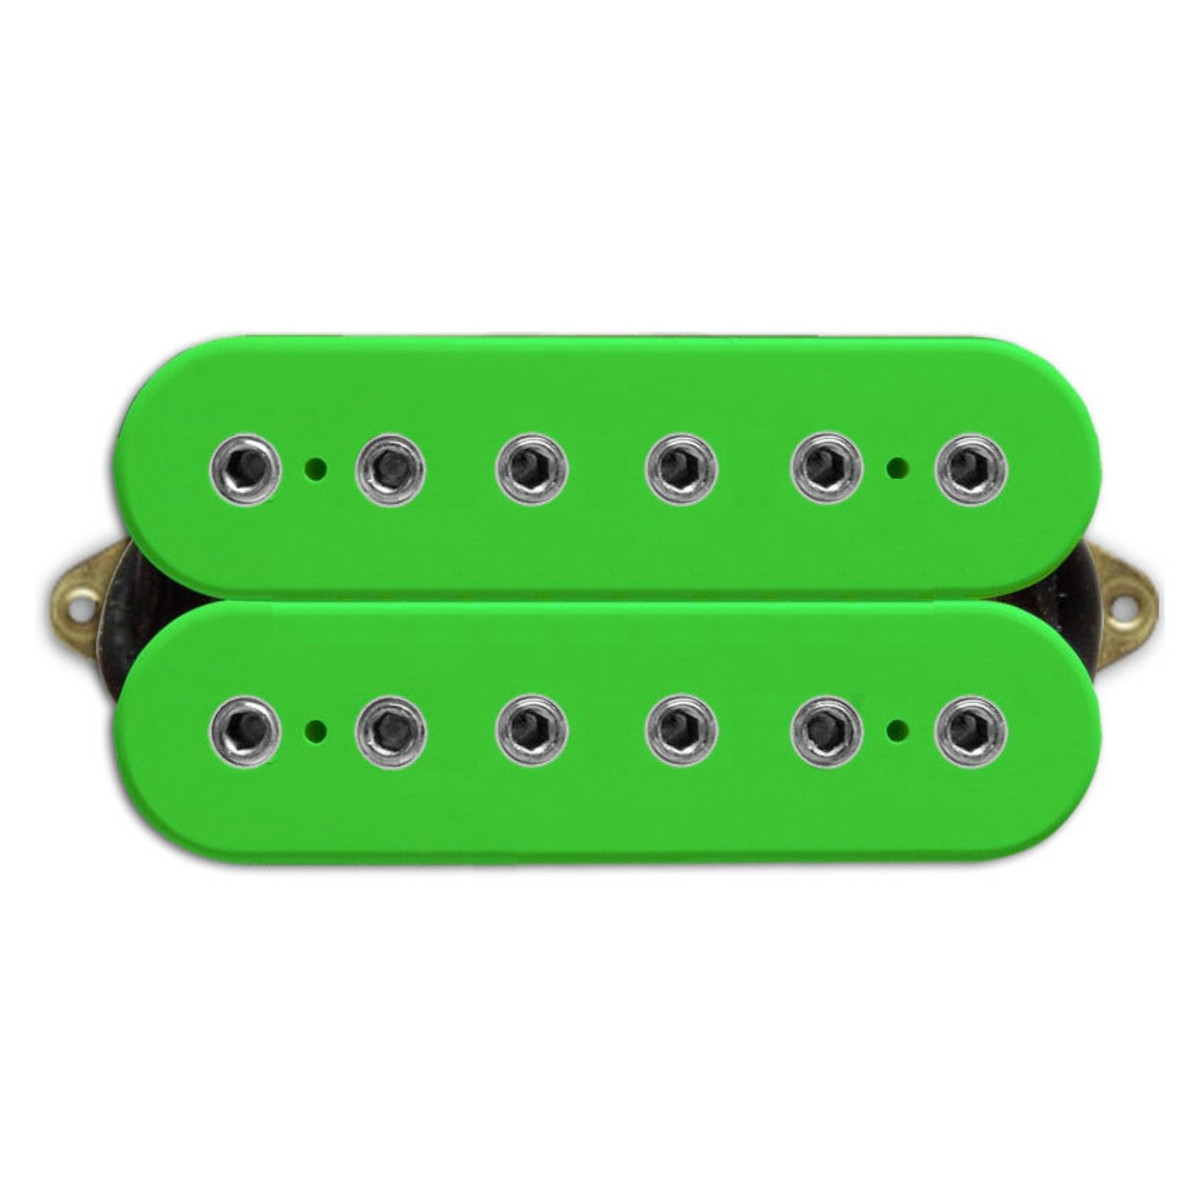 dimarzio dp100 super distortion f spaced humbucker pickup green at gear4music. Black Bedroom Furniture Sets. Home Design Ideas